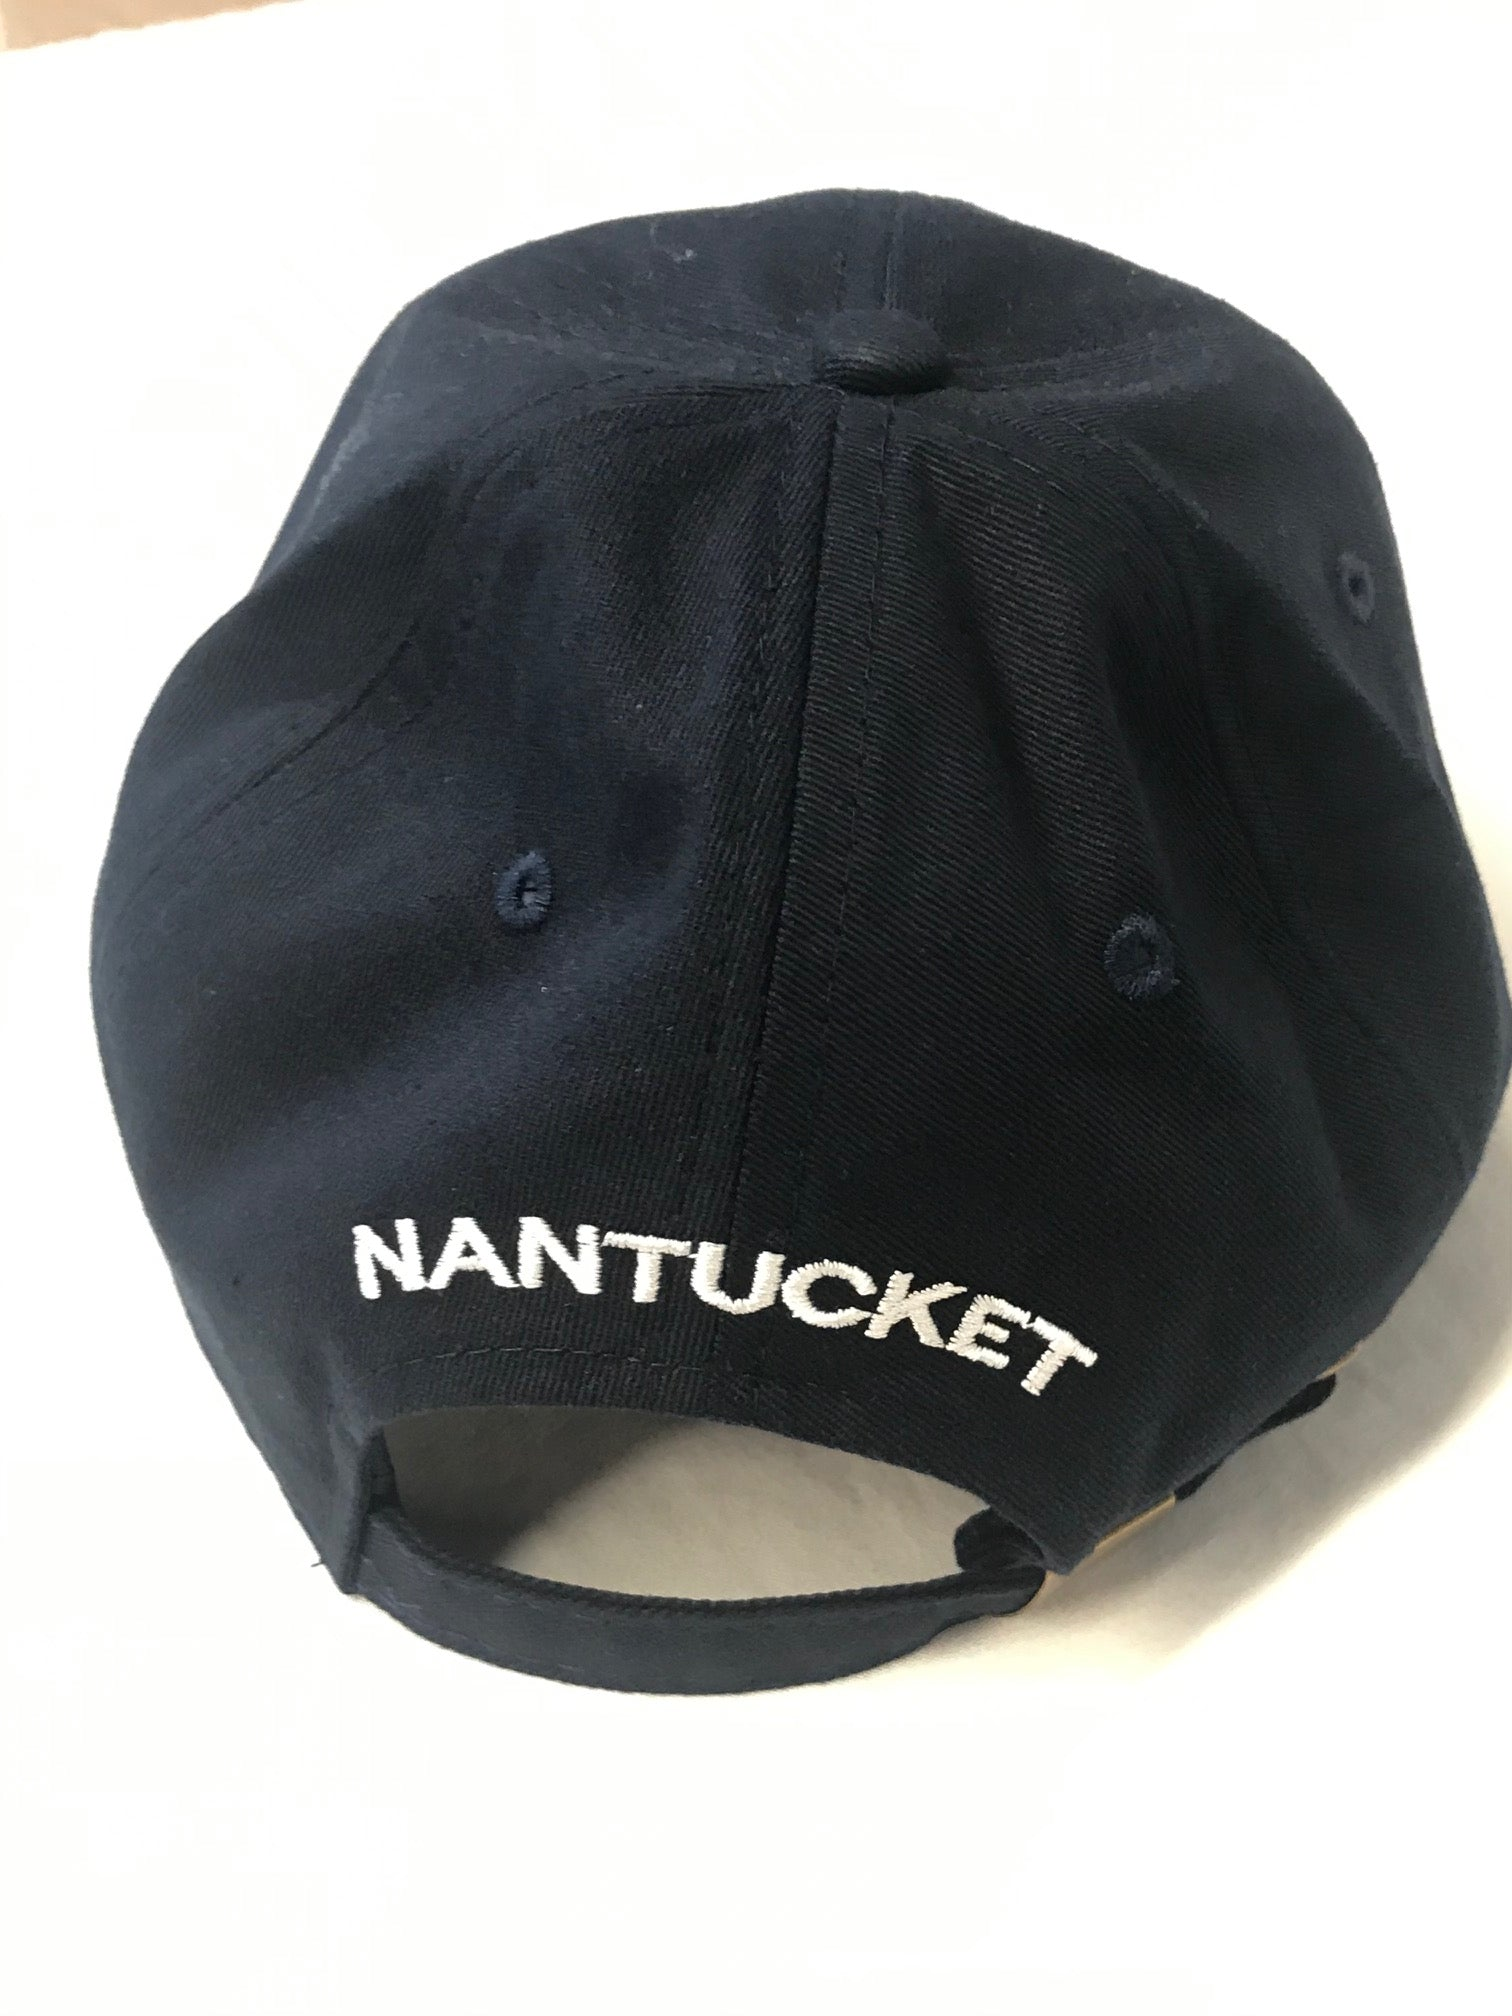 Nantucket Island -Garment Washed Hats